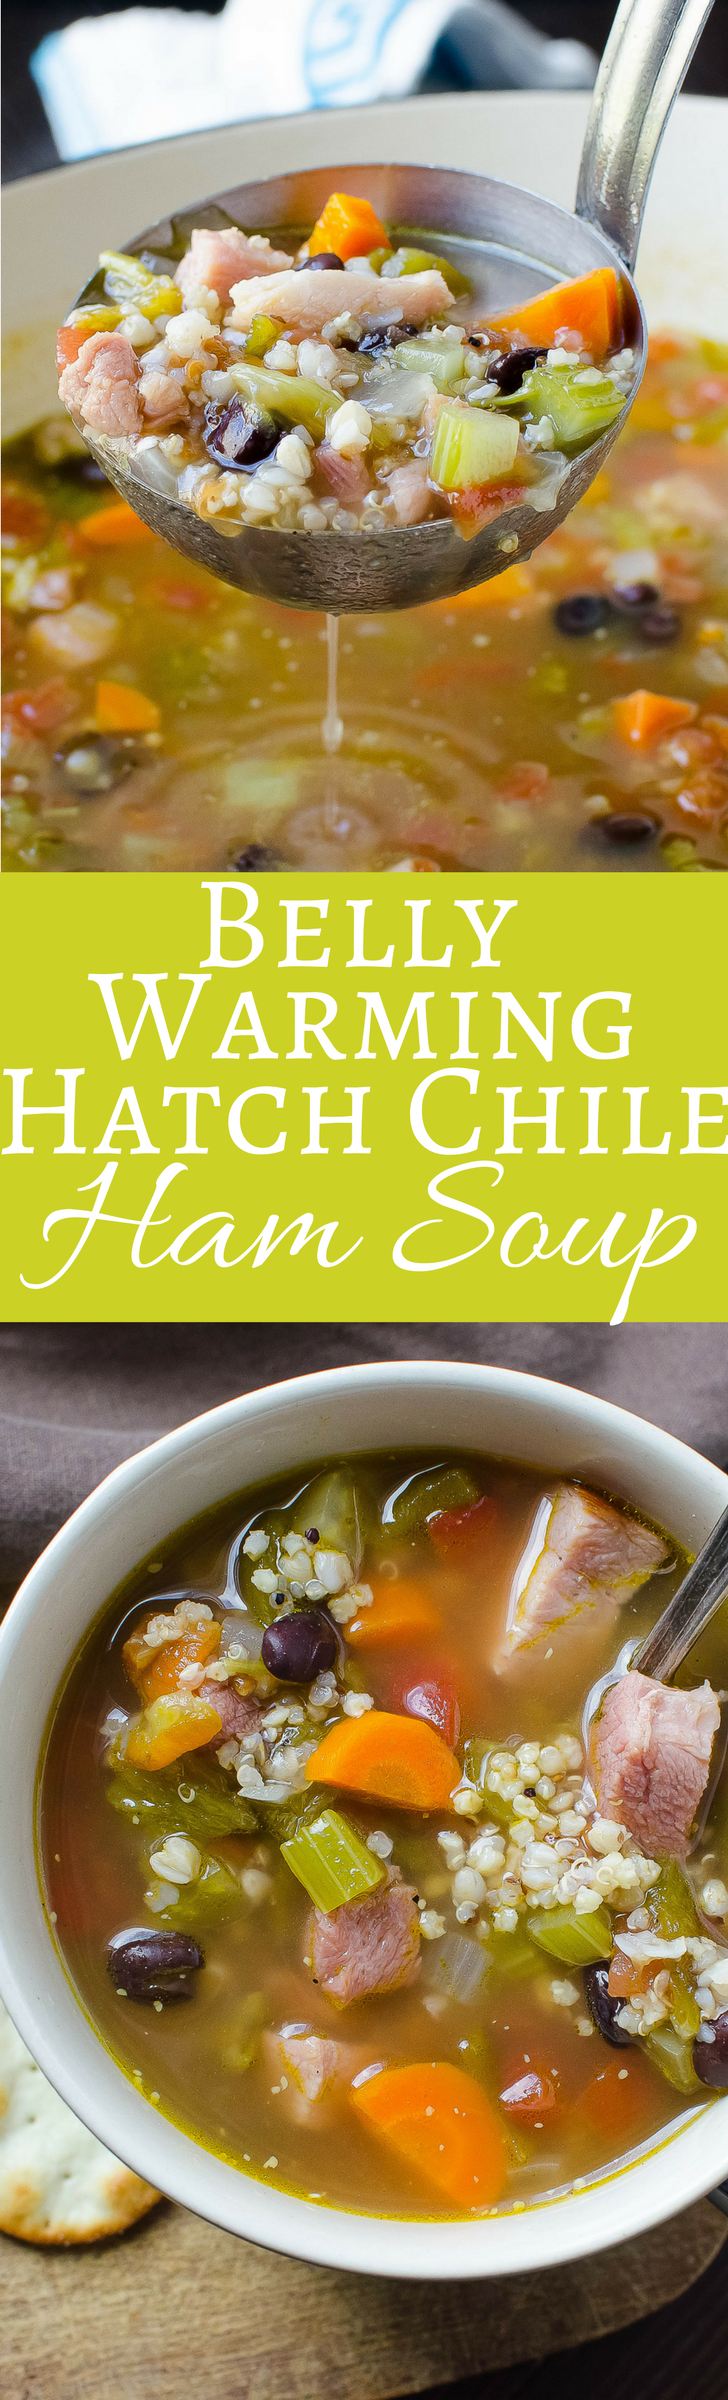 One of the most flavorful homemade ham soup recipes - with spicy Hatch Chiles, fiber rich black beans and ancient grains!  Healthy and delicious!